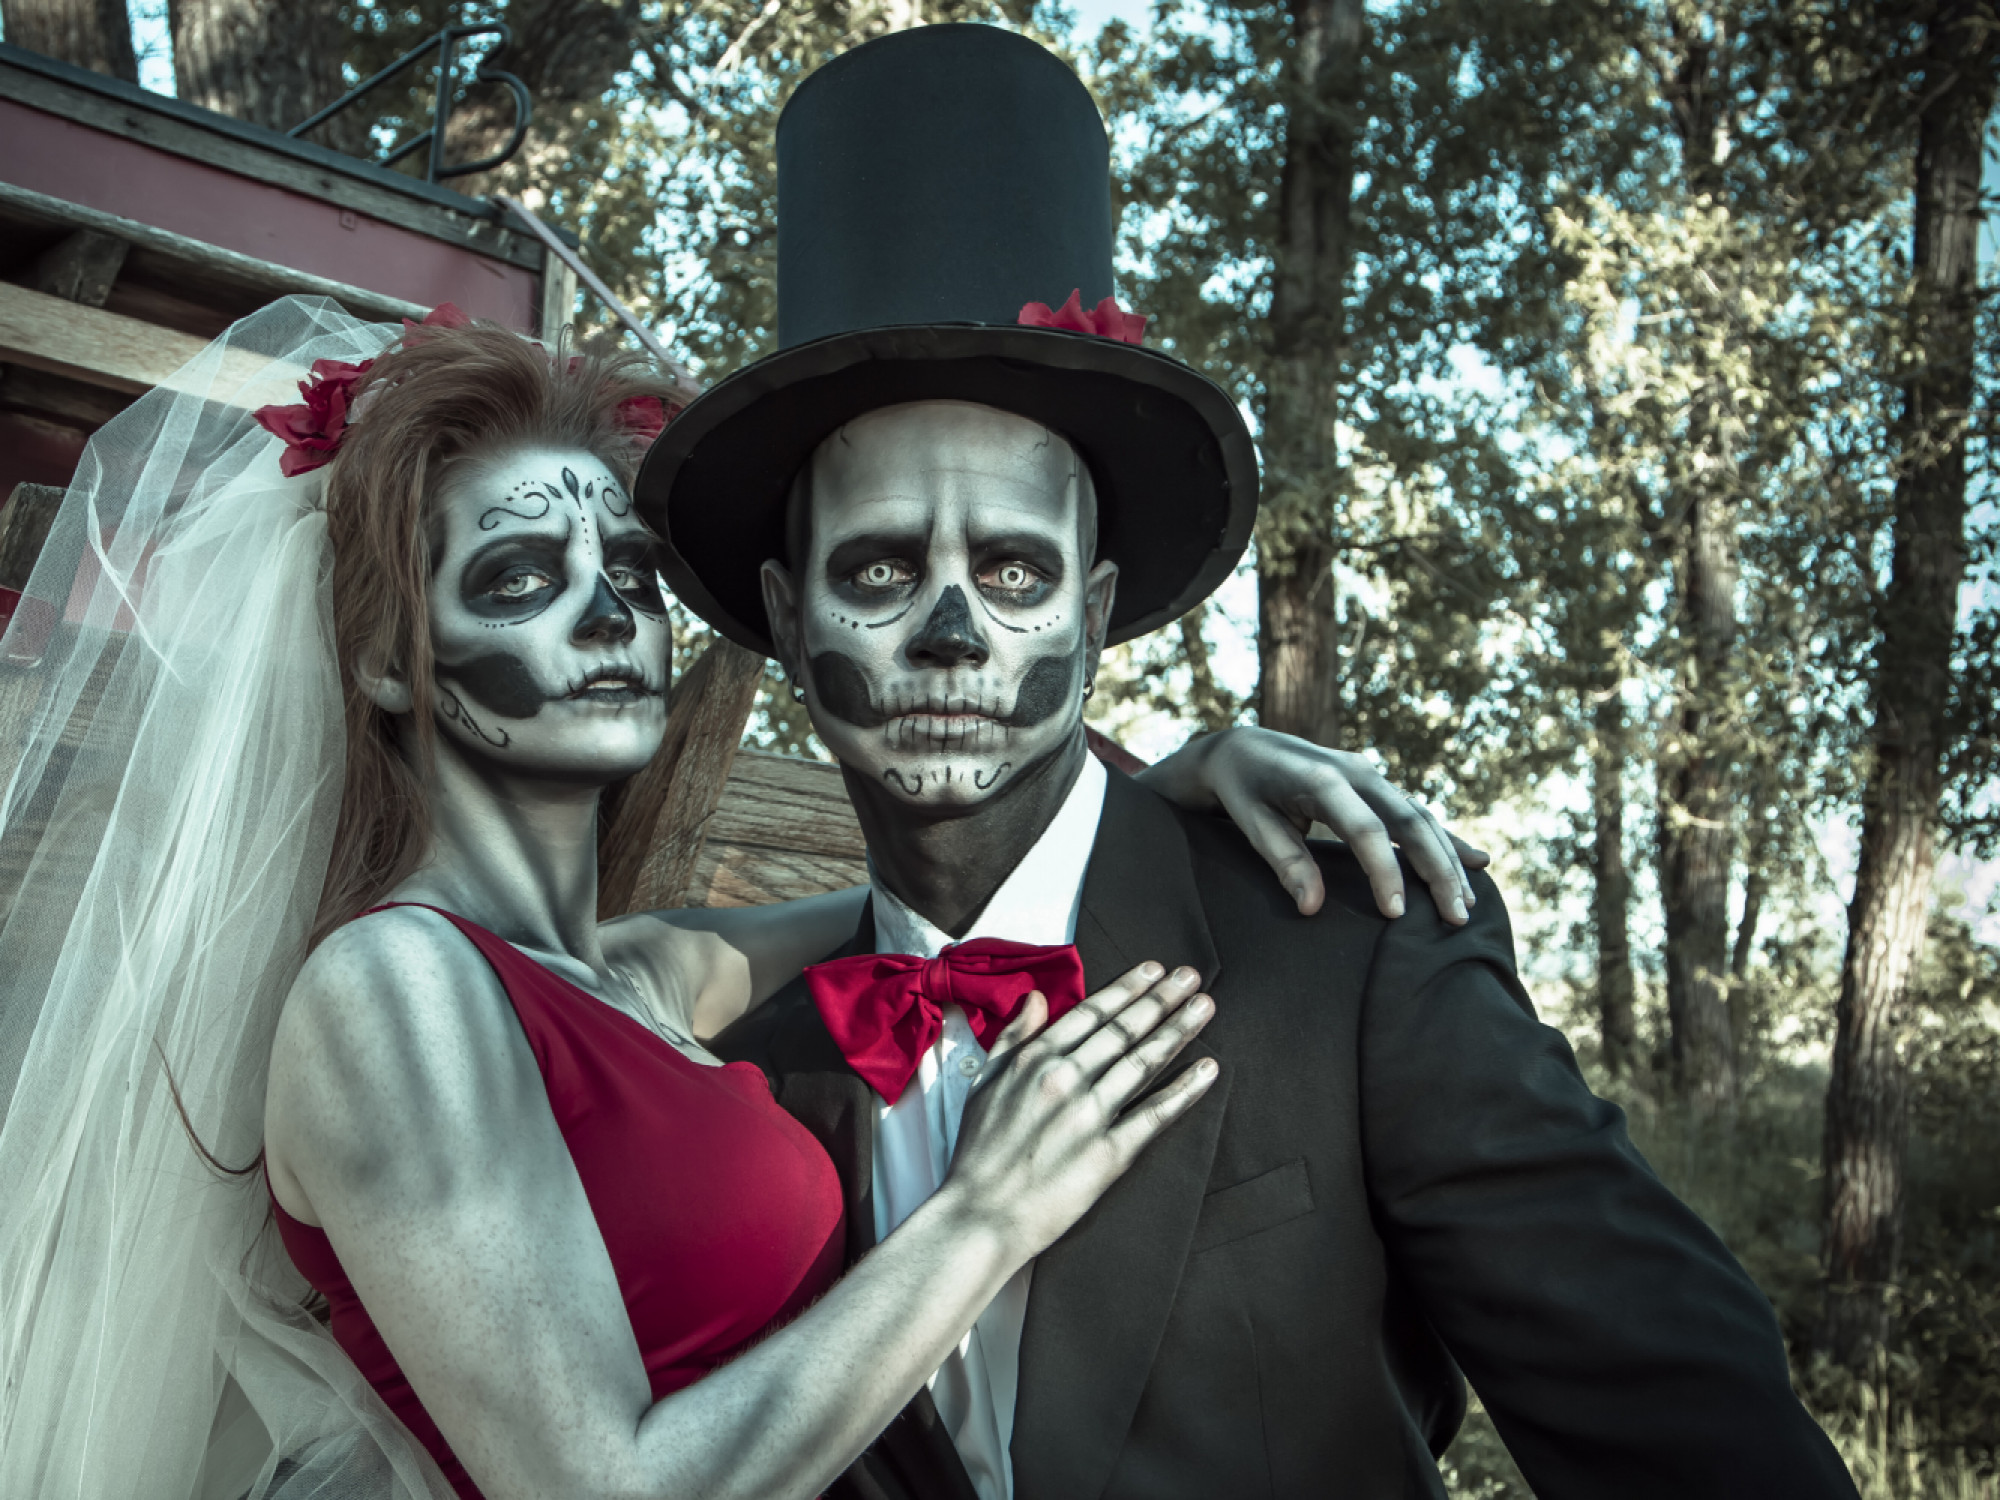 These 10 Iconic Halloween Couple Outfits Will Wow the Guests at Your Halloween Party